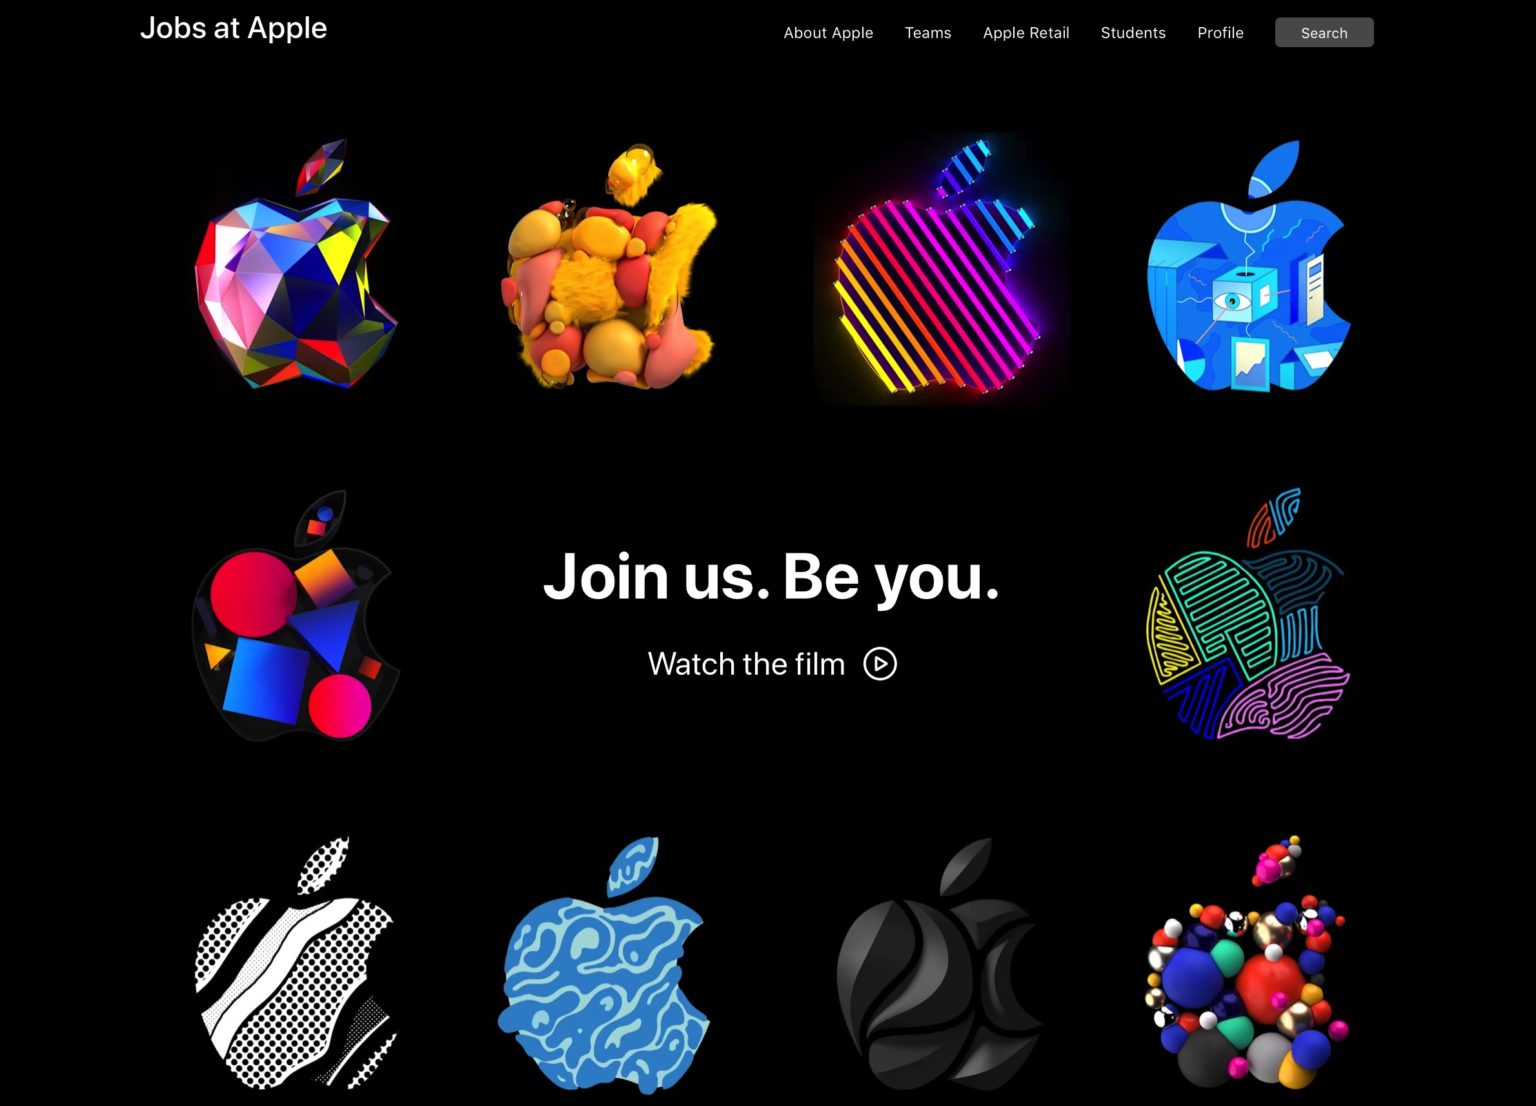 Apple gives its hiring page a colorful overhaul -- and a renewed focus on AI